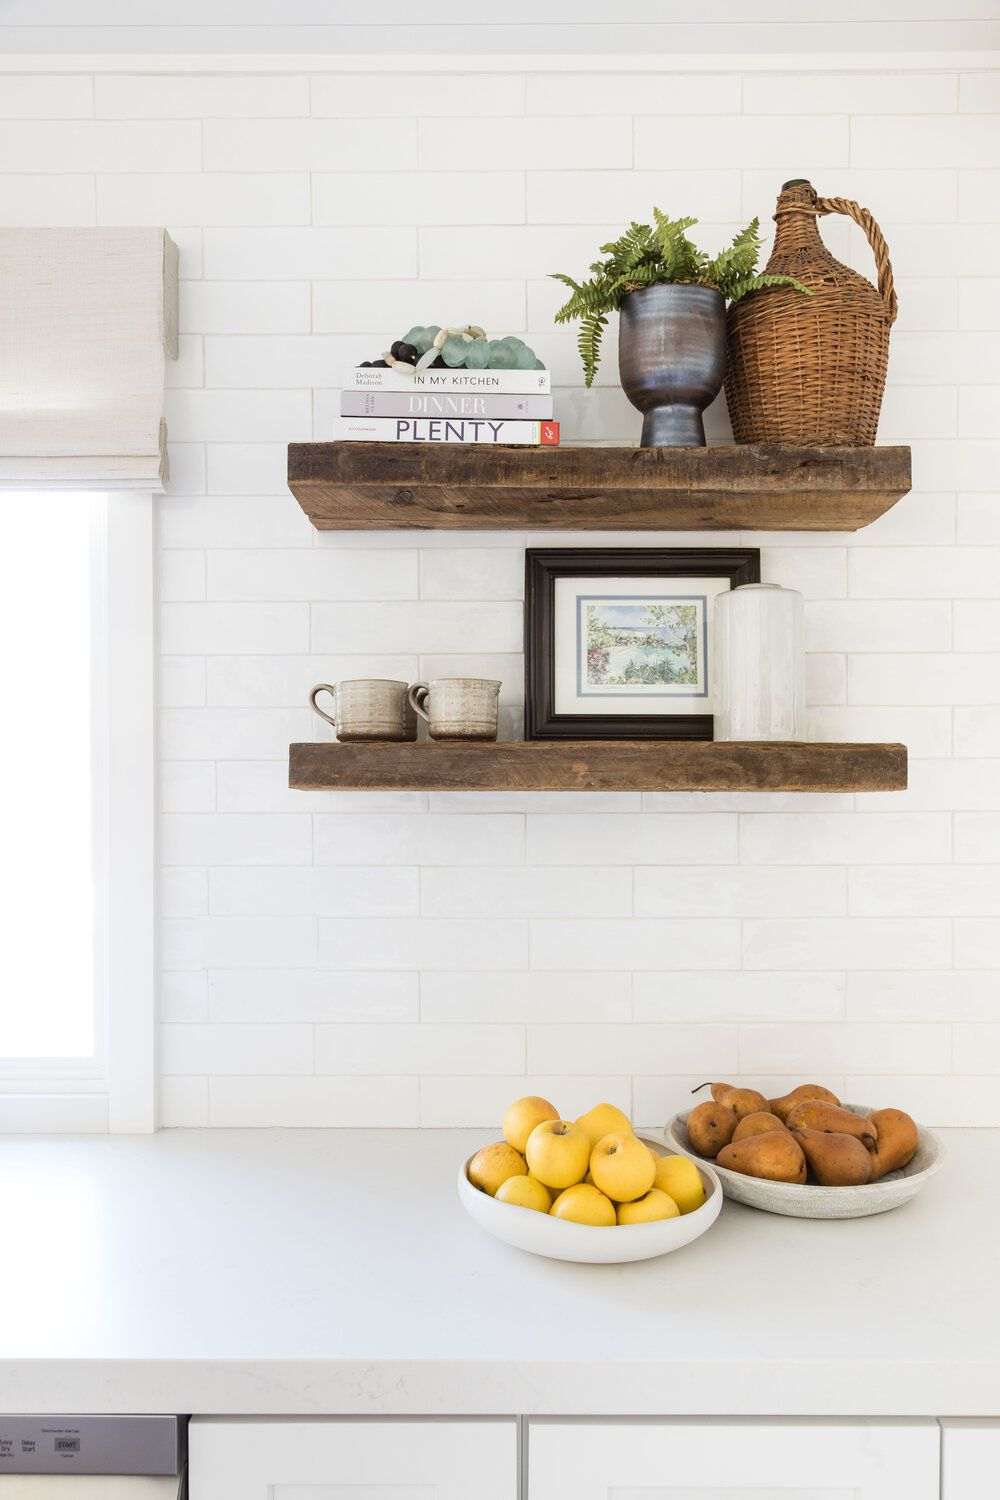 A light-filled kitchen with reclaimed wood cabinets